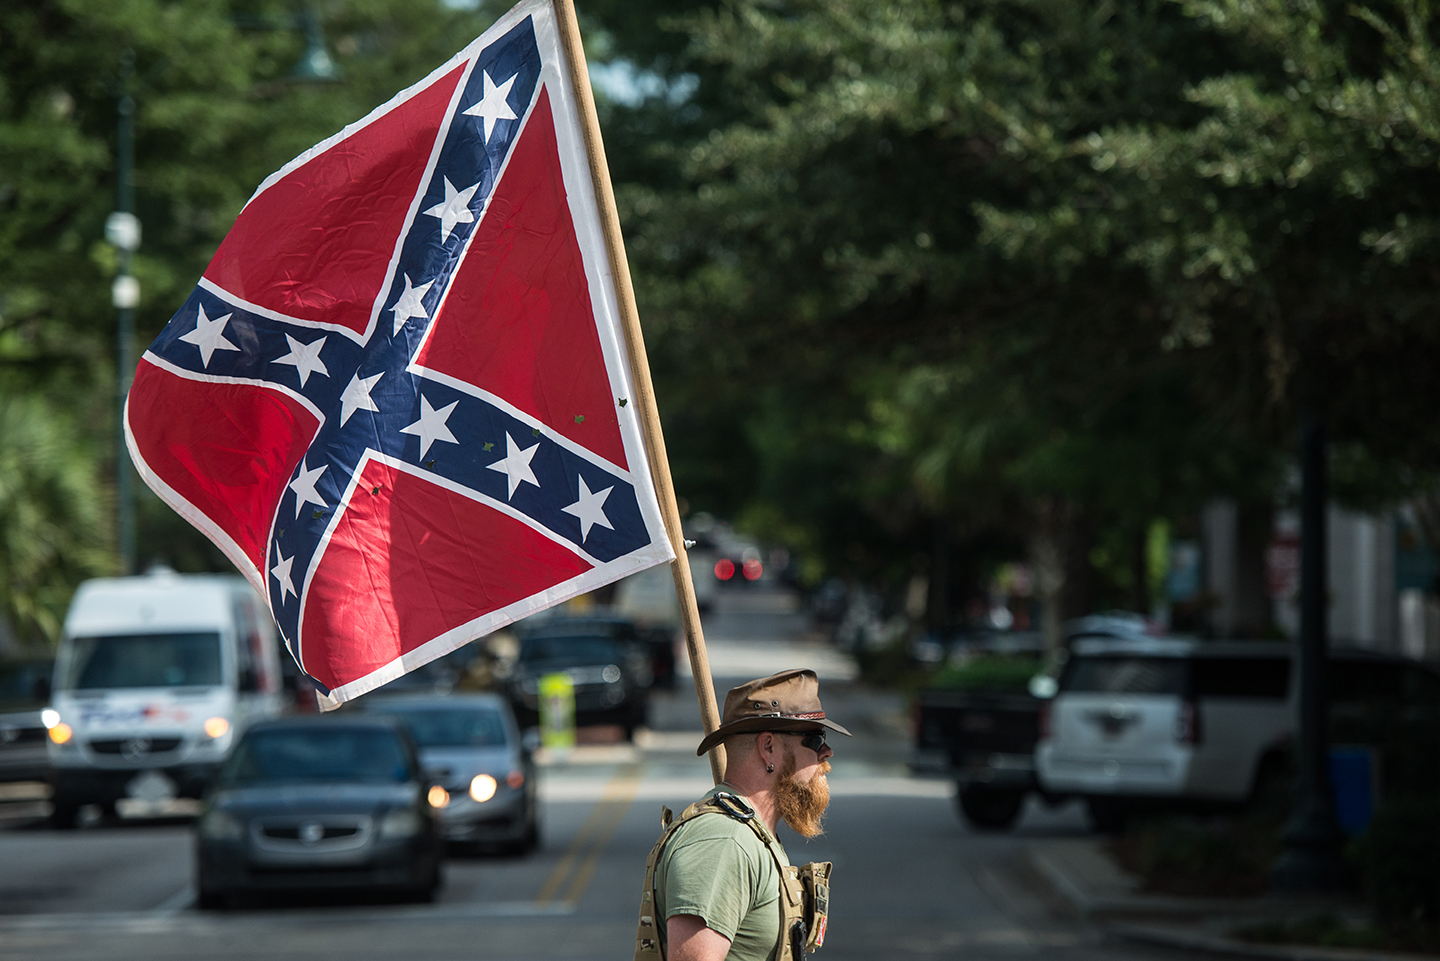 A Confederate flag supporter